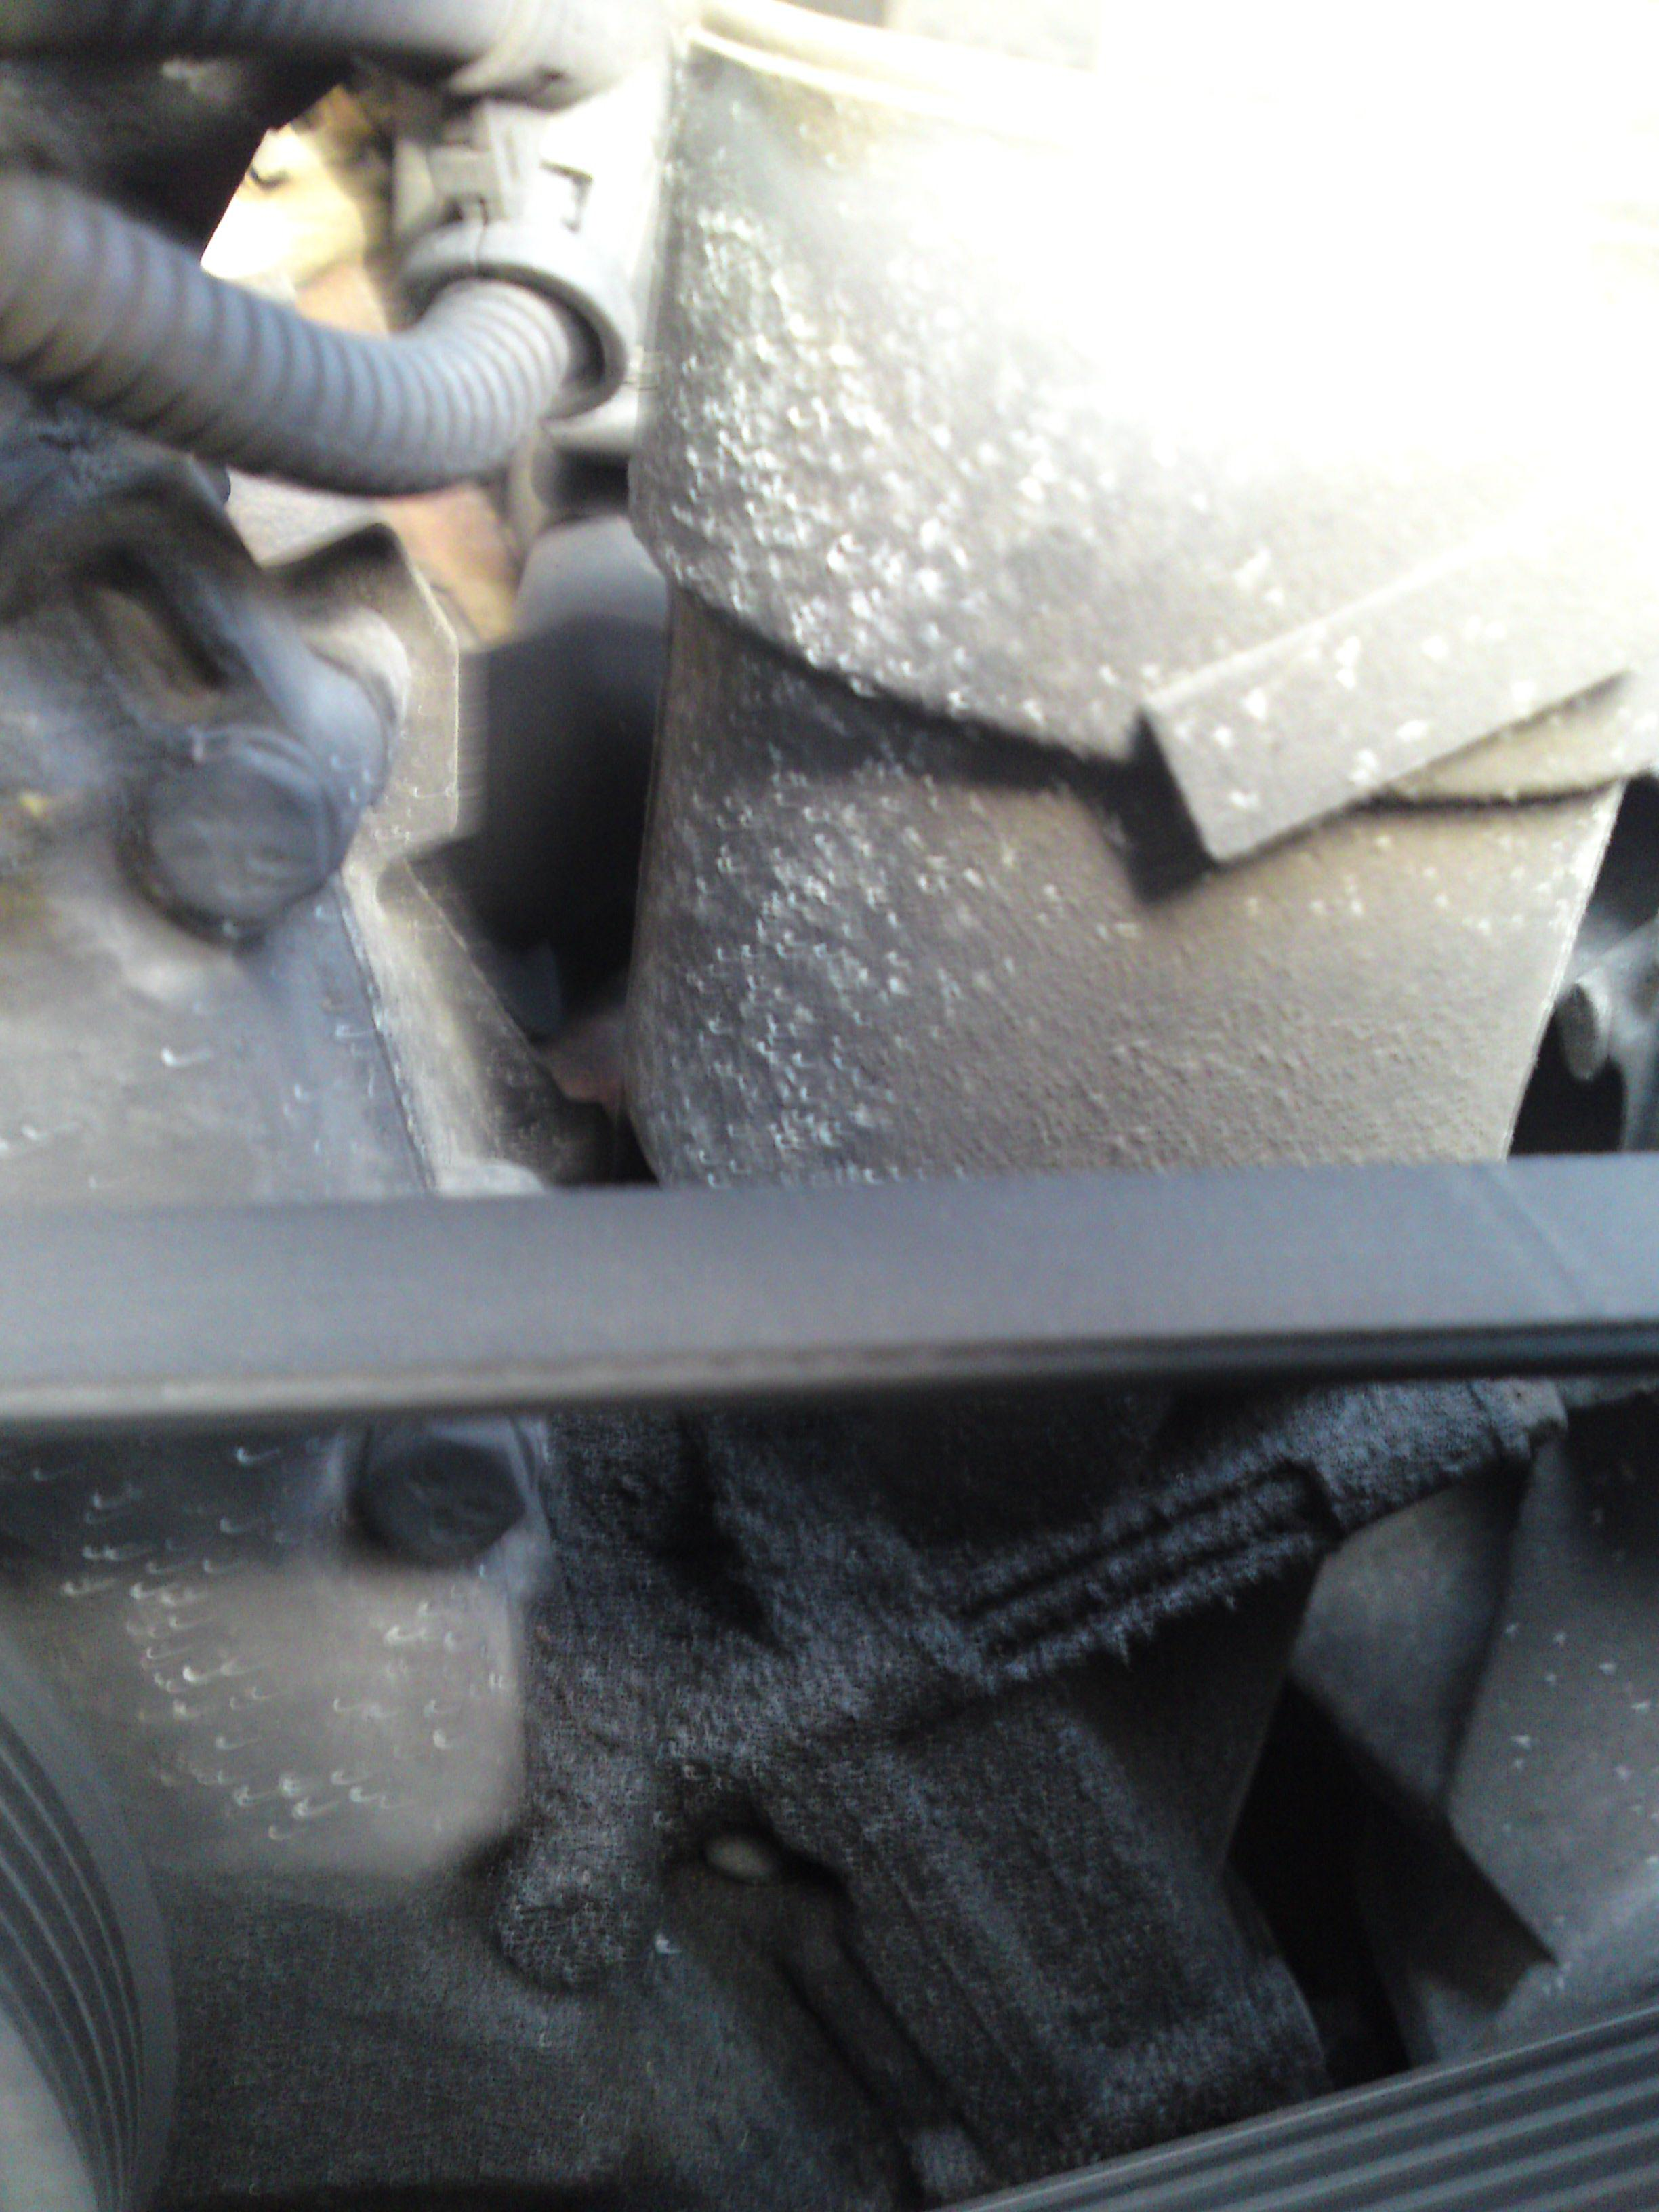 Oil Leak From Engine Of My 316i Bmw Forum 325i Filter Housing Click Image For Larger Version Name Near Views 1708 Size